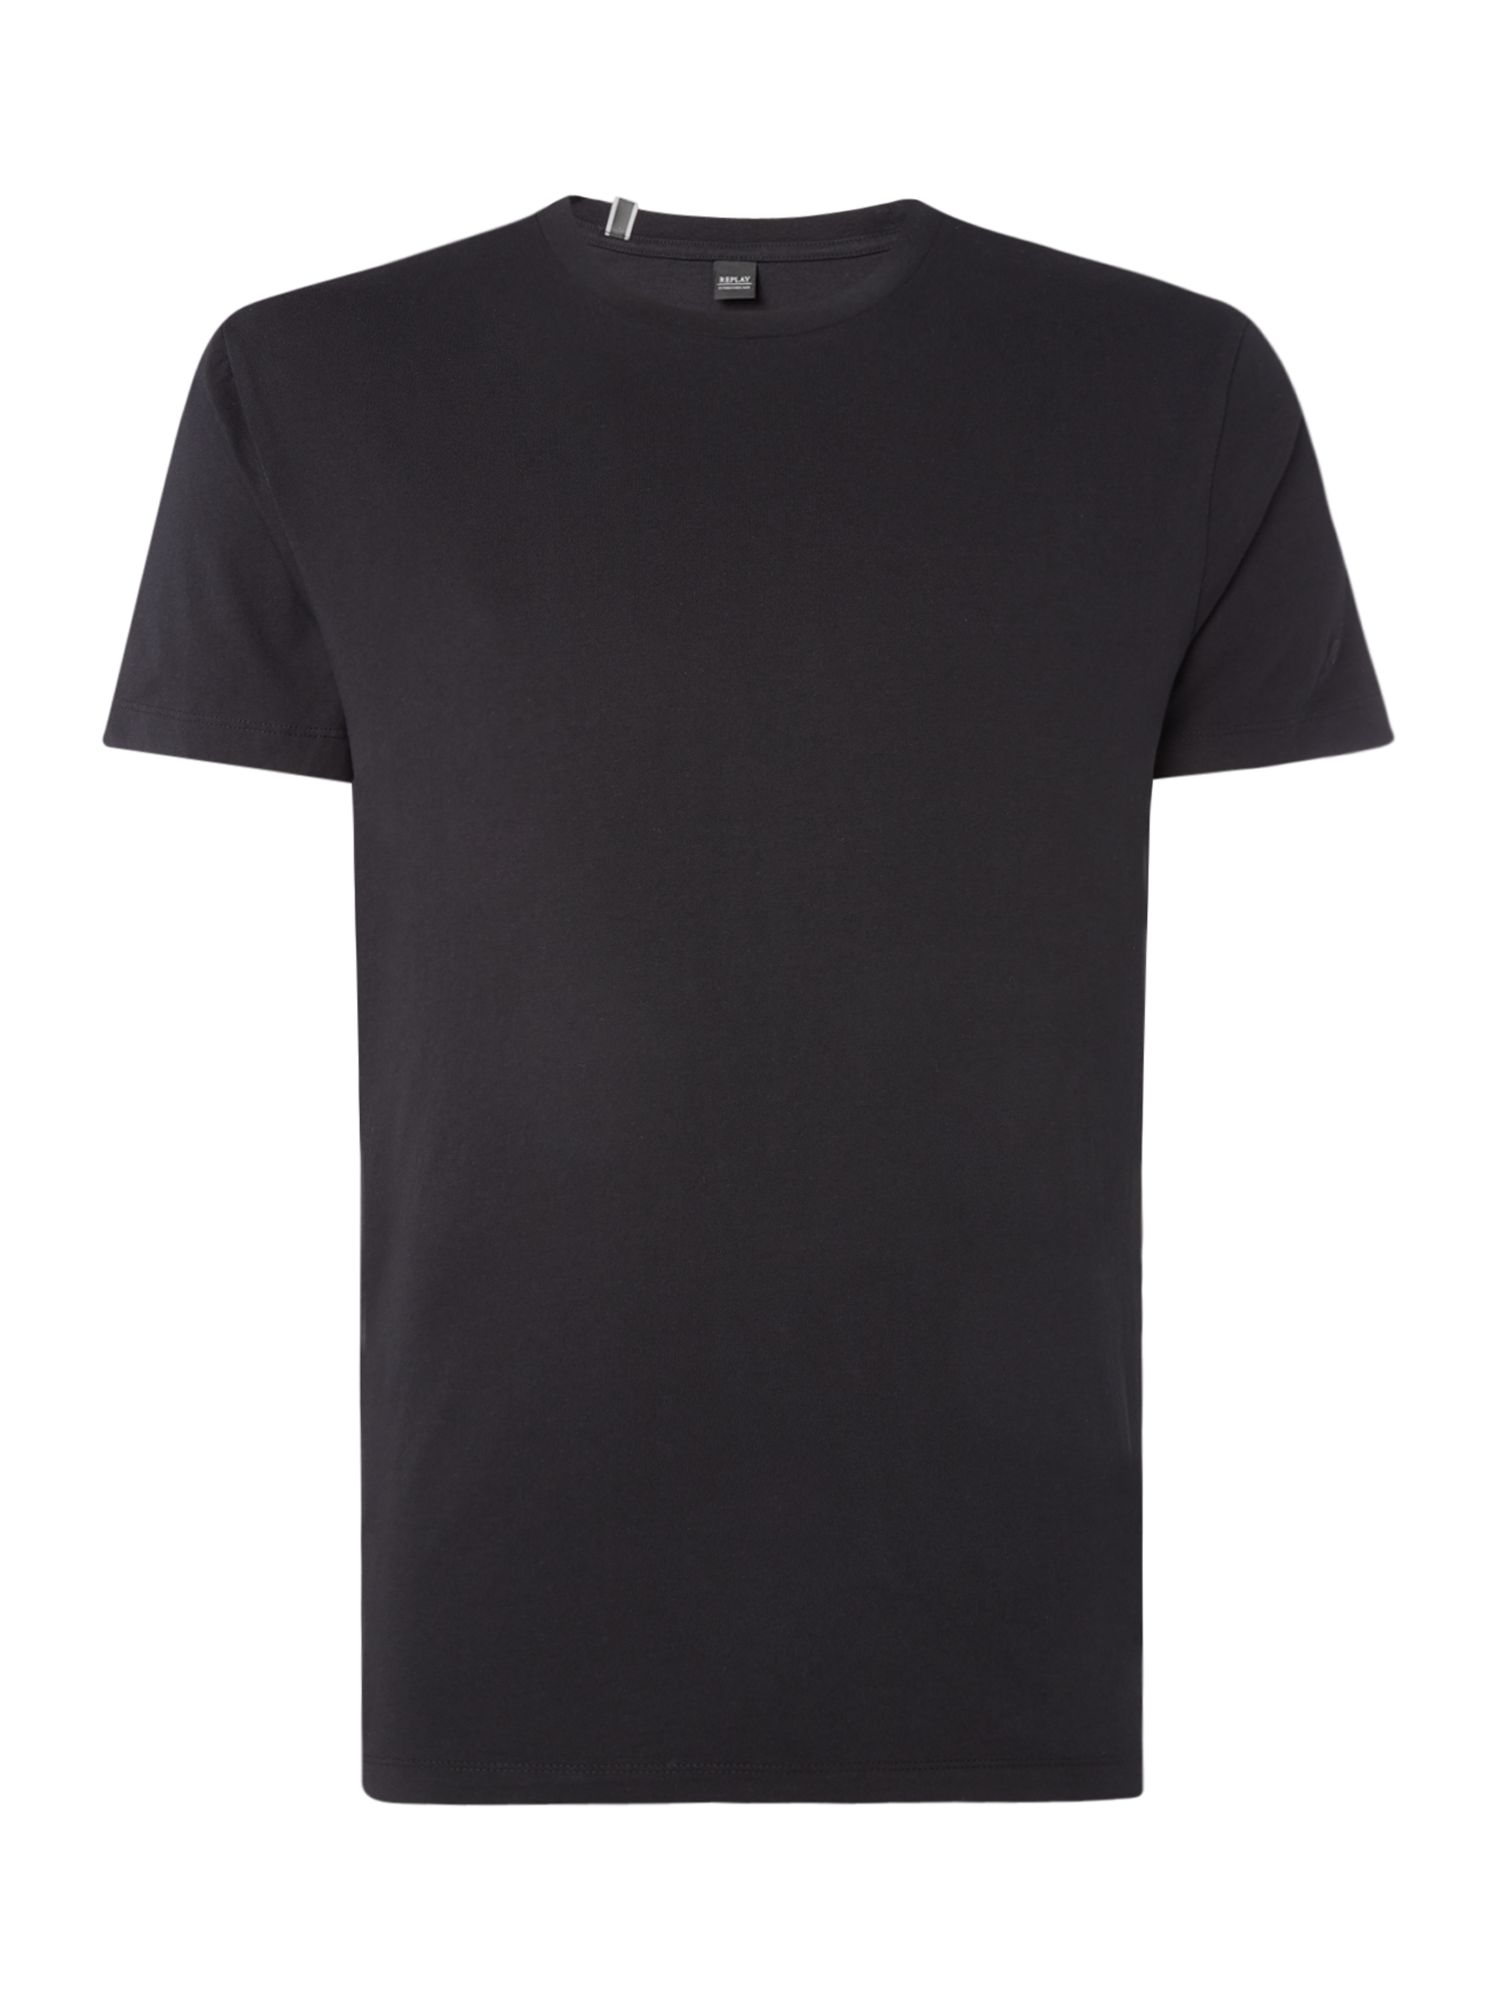 Men's Replay Jersey T-shirt, Nearly Black